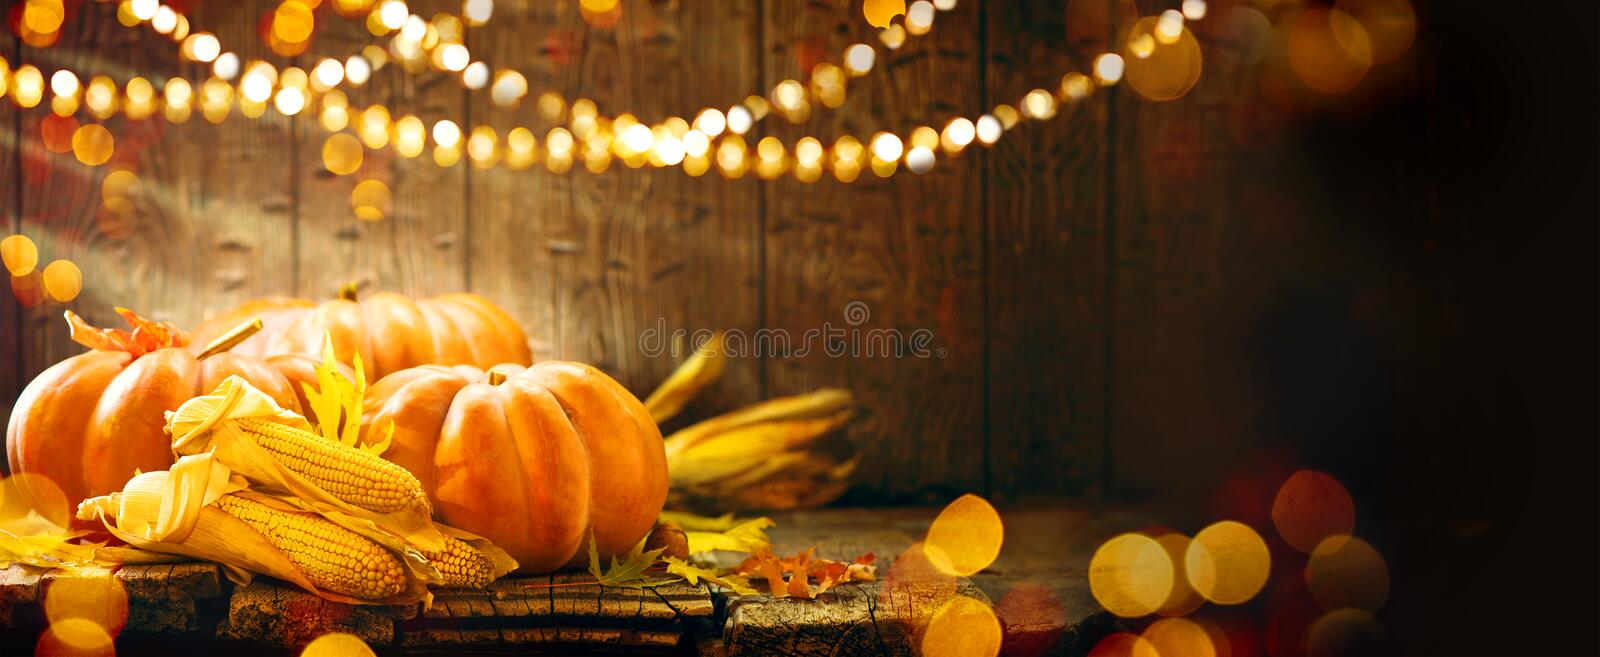 Autumn Thanksgiving pumpkins over wooden background stock photo